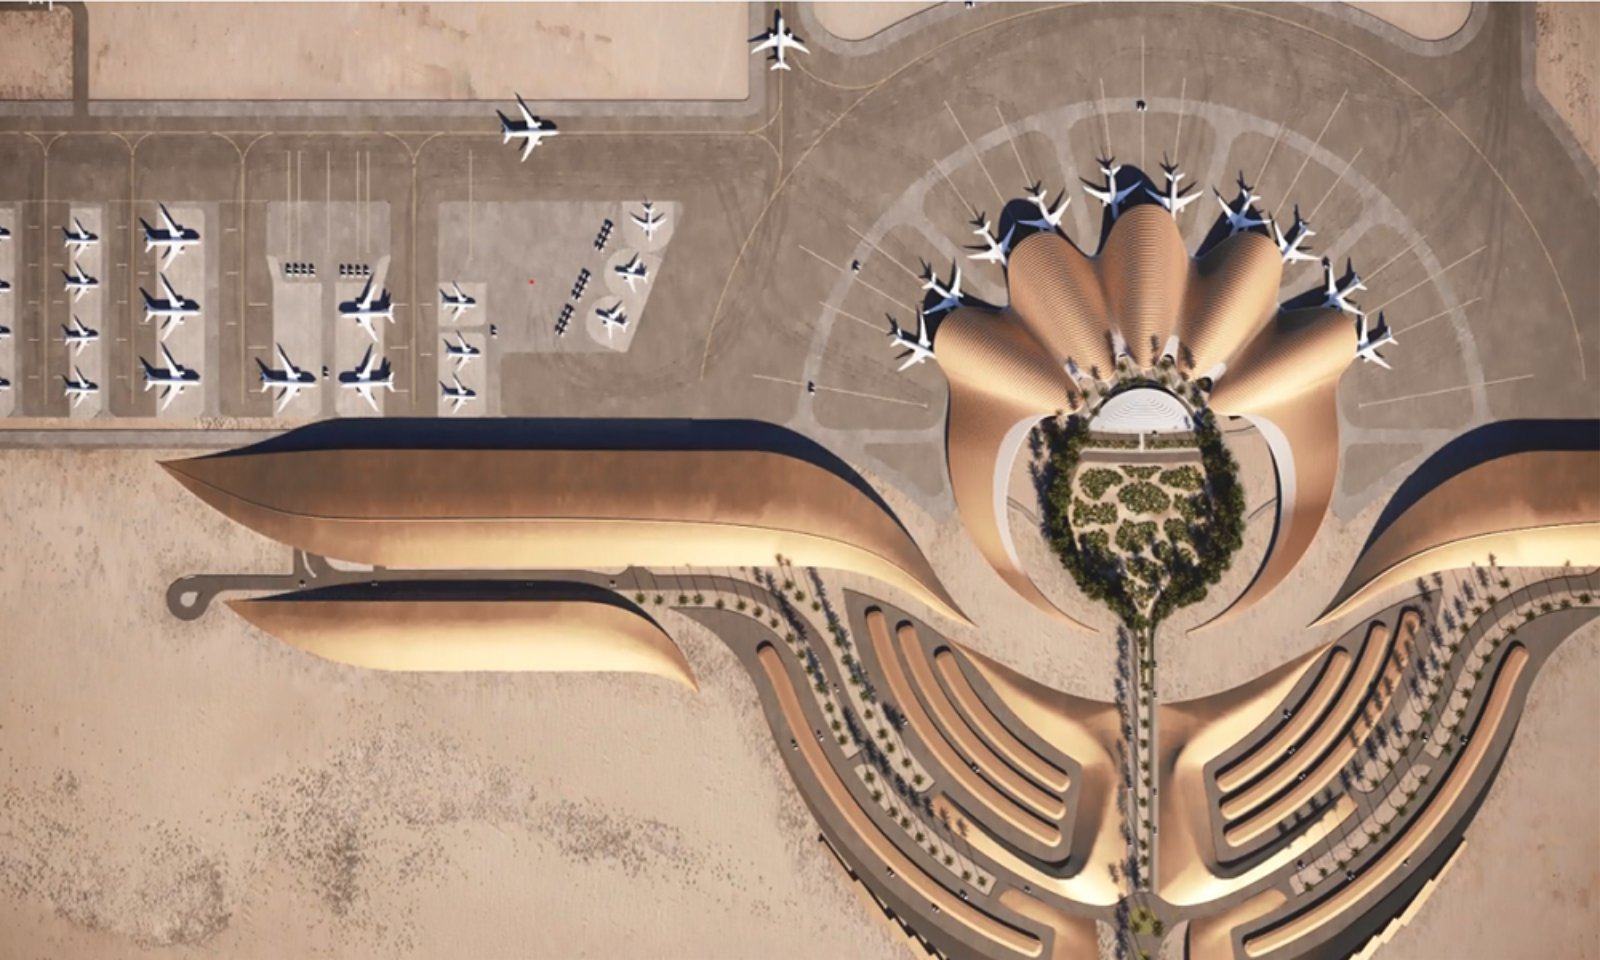 Red Sea airport